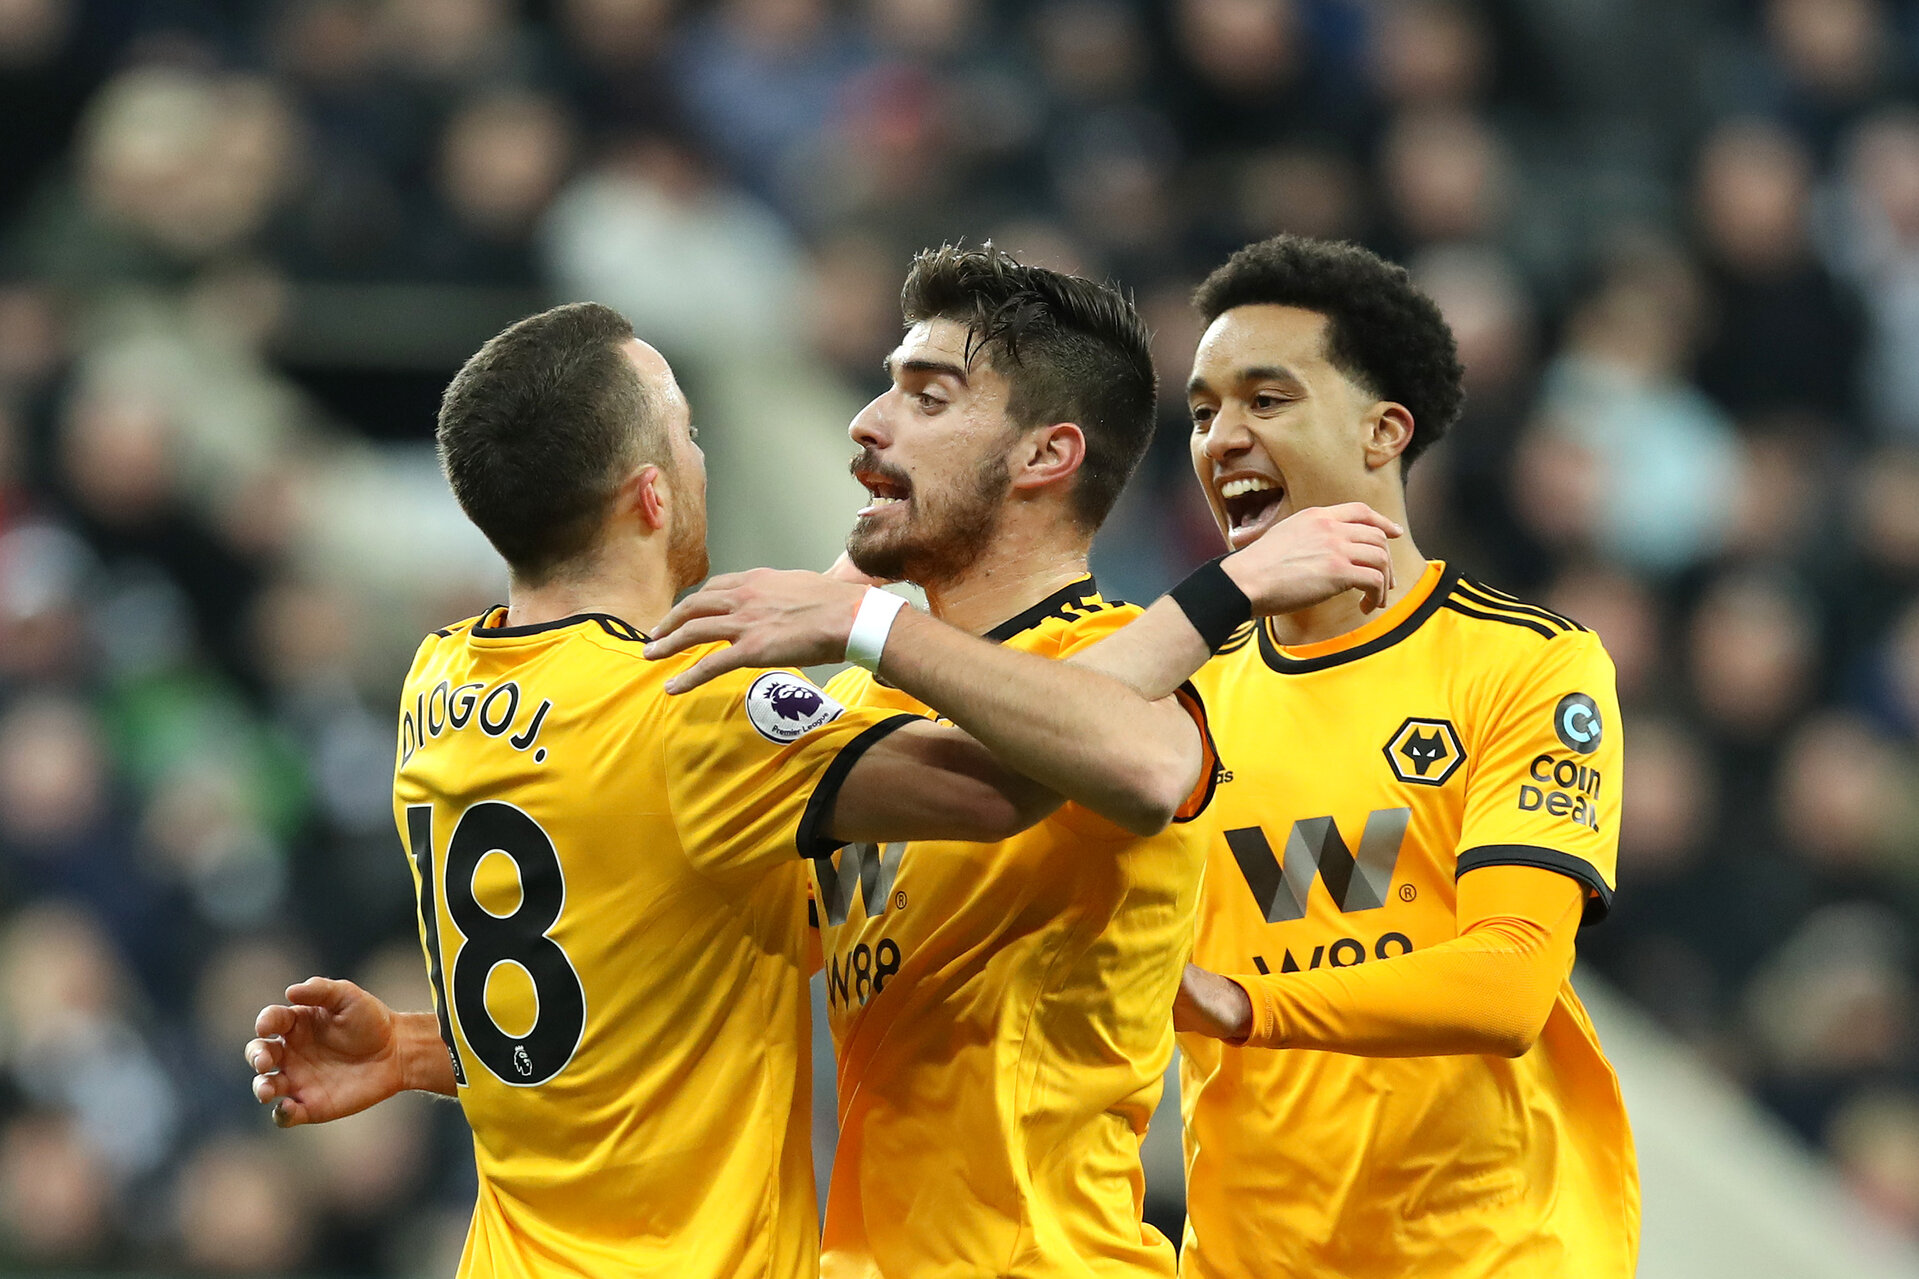 NEWCASTLE UPON TYNE, ENGLAND - DECEMBER 09:  Diogo Jota of Wolverhampton Wanderers (L) celebrates after scoring his team's first goal Conor with Ruben Neves during the Premier League match between Newcastle United and Wolverhampton Wanderers at St. James Park on December 9, 2018 in Newcastle upon Tyne, United Kingdom.  (Photo by Ian MacNicol/Getty Images)